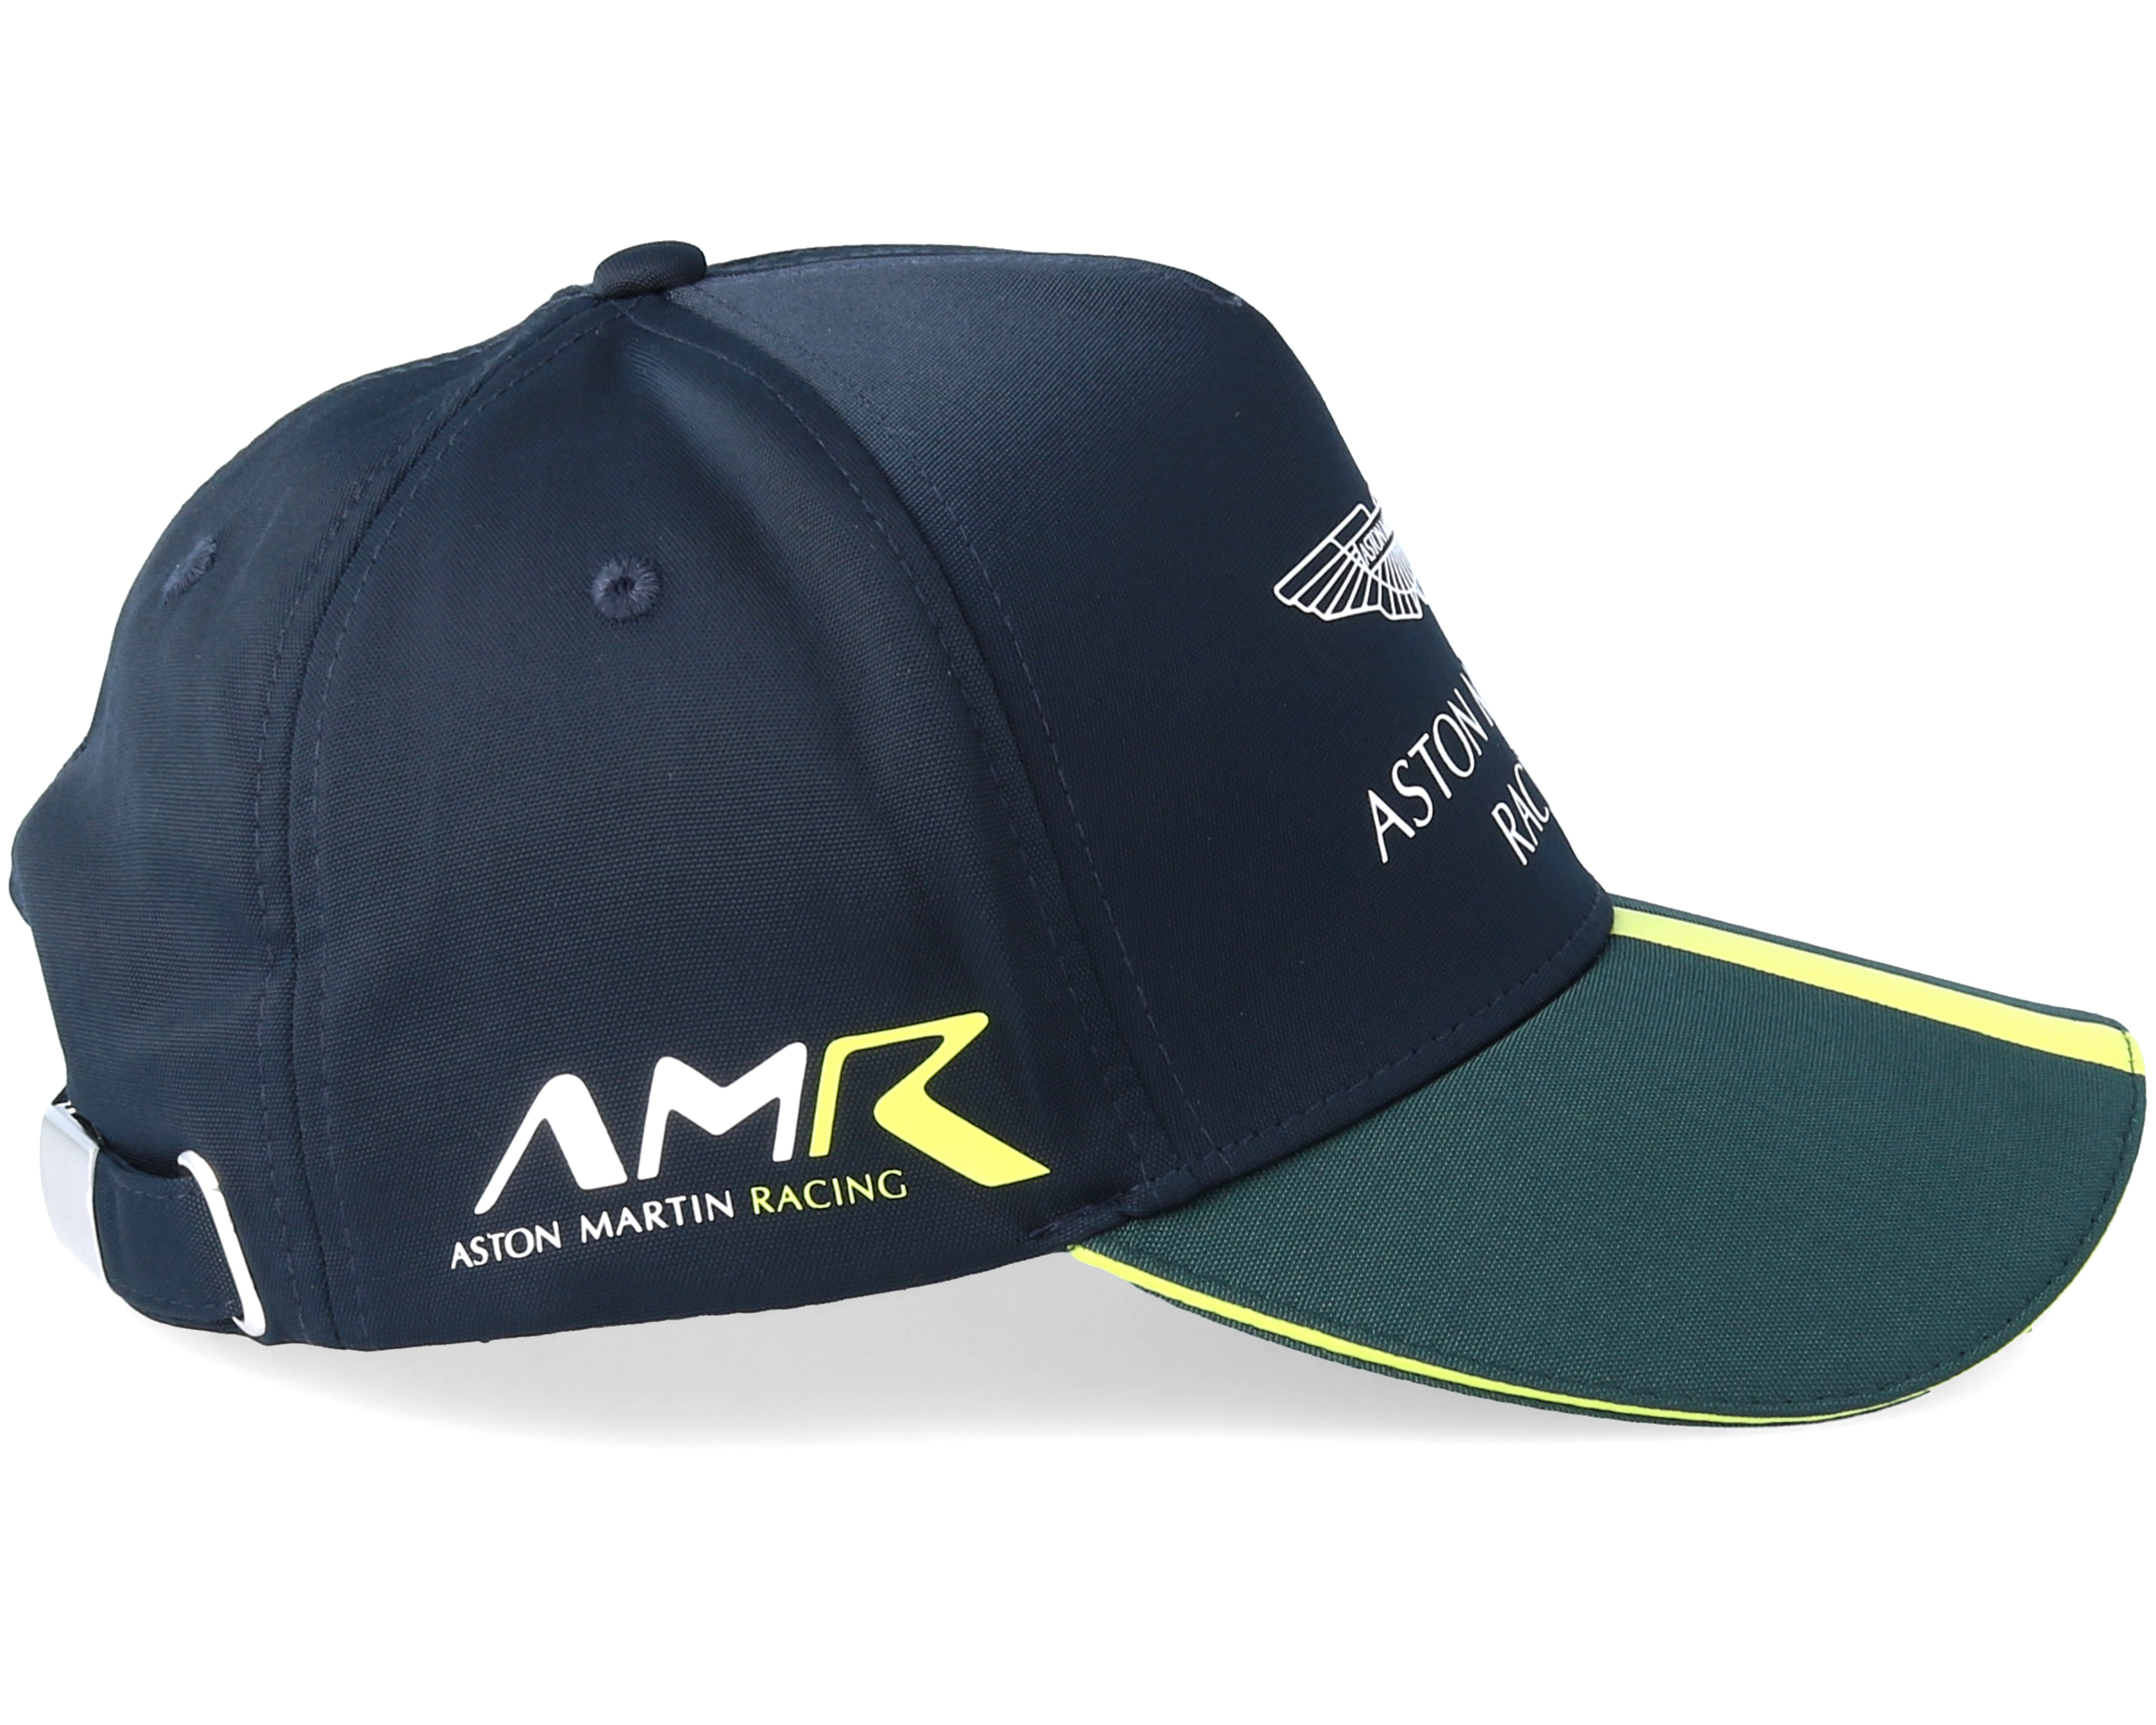 aston martin racing adult team cap navy green adjustable. Black Bedroom Furniture Sets. Home Design Ideas